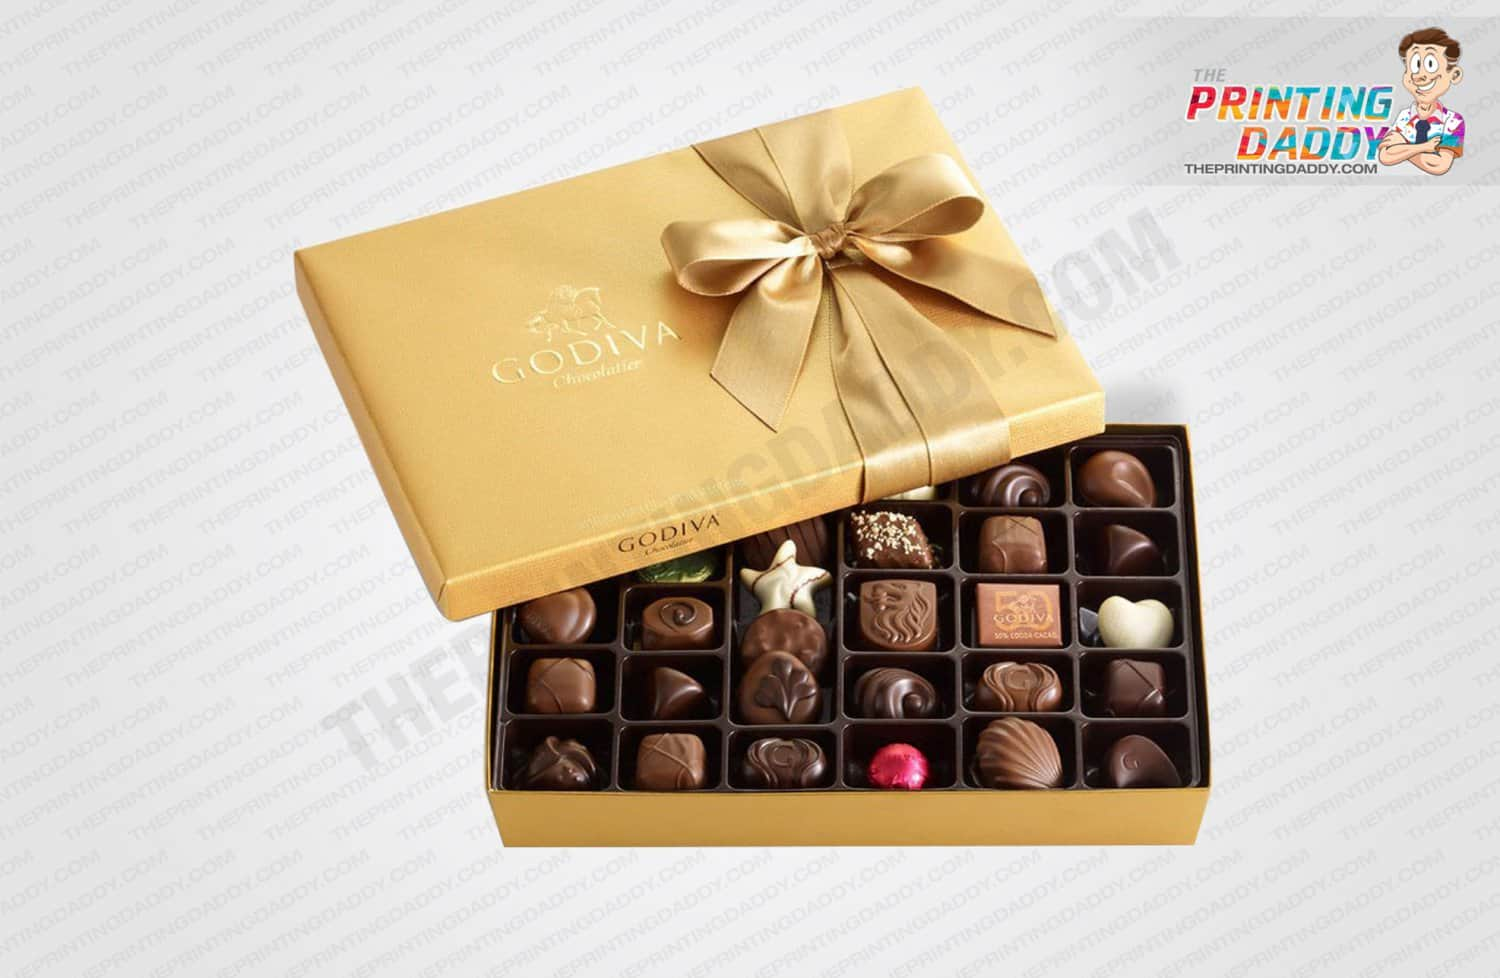 Gold Chocolate with Ribbon Box The Printing Daddy